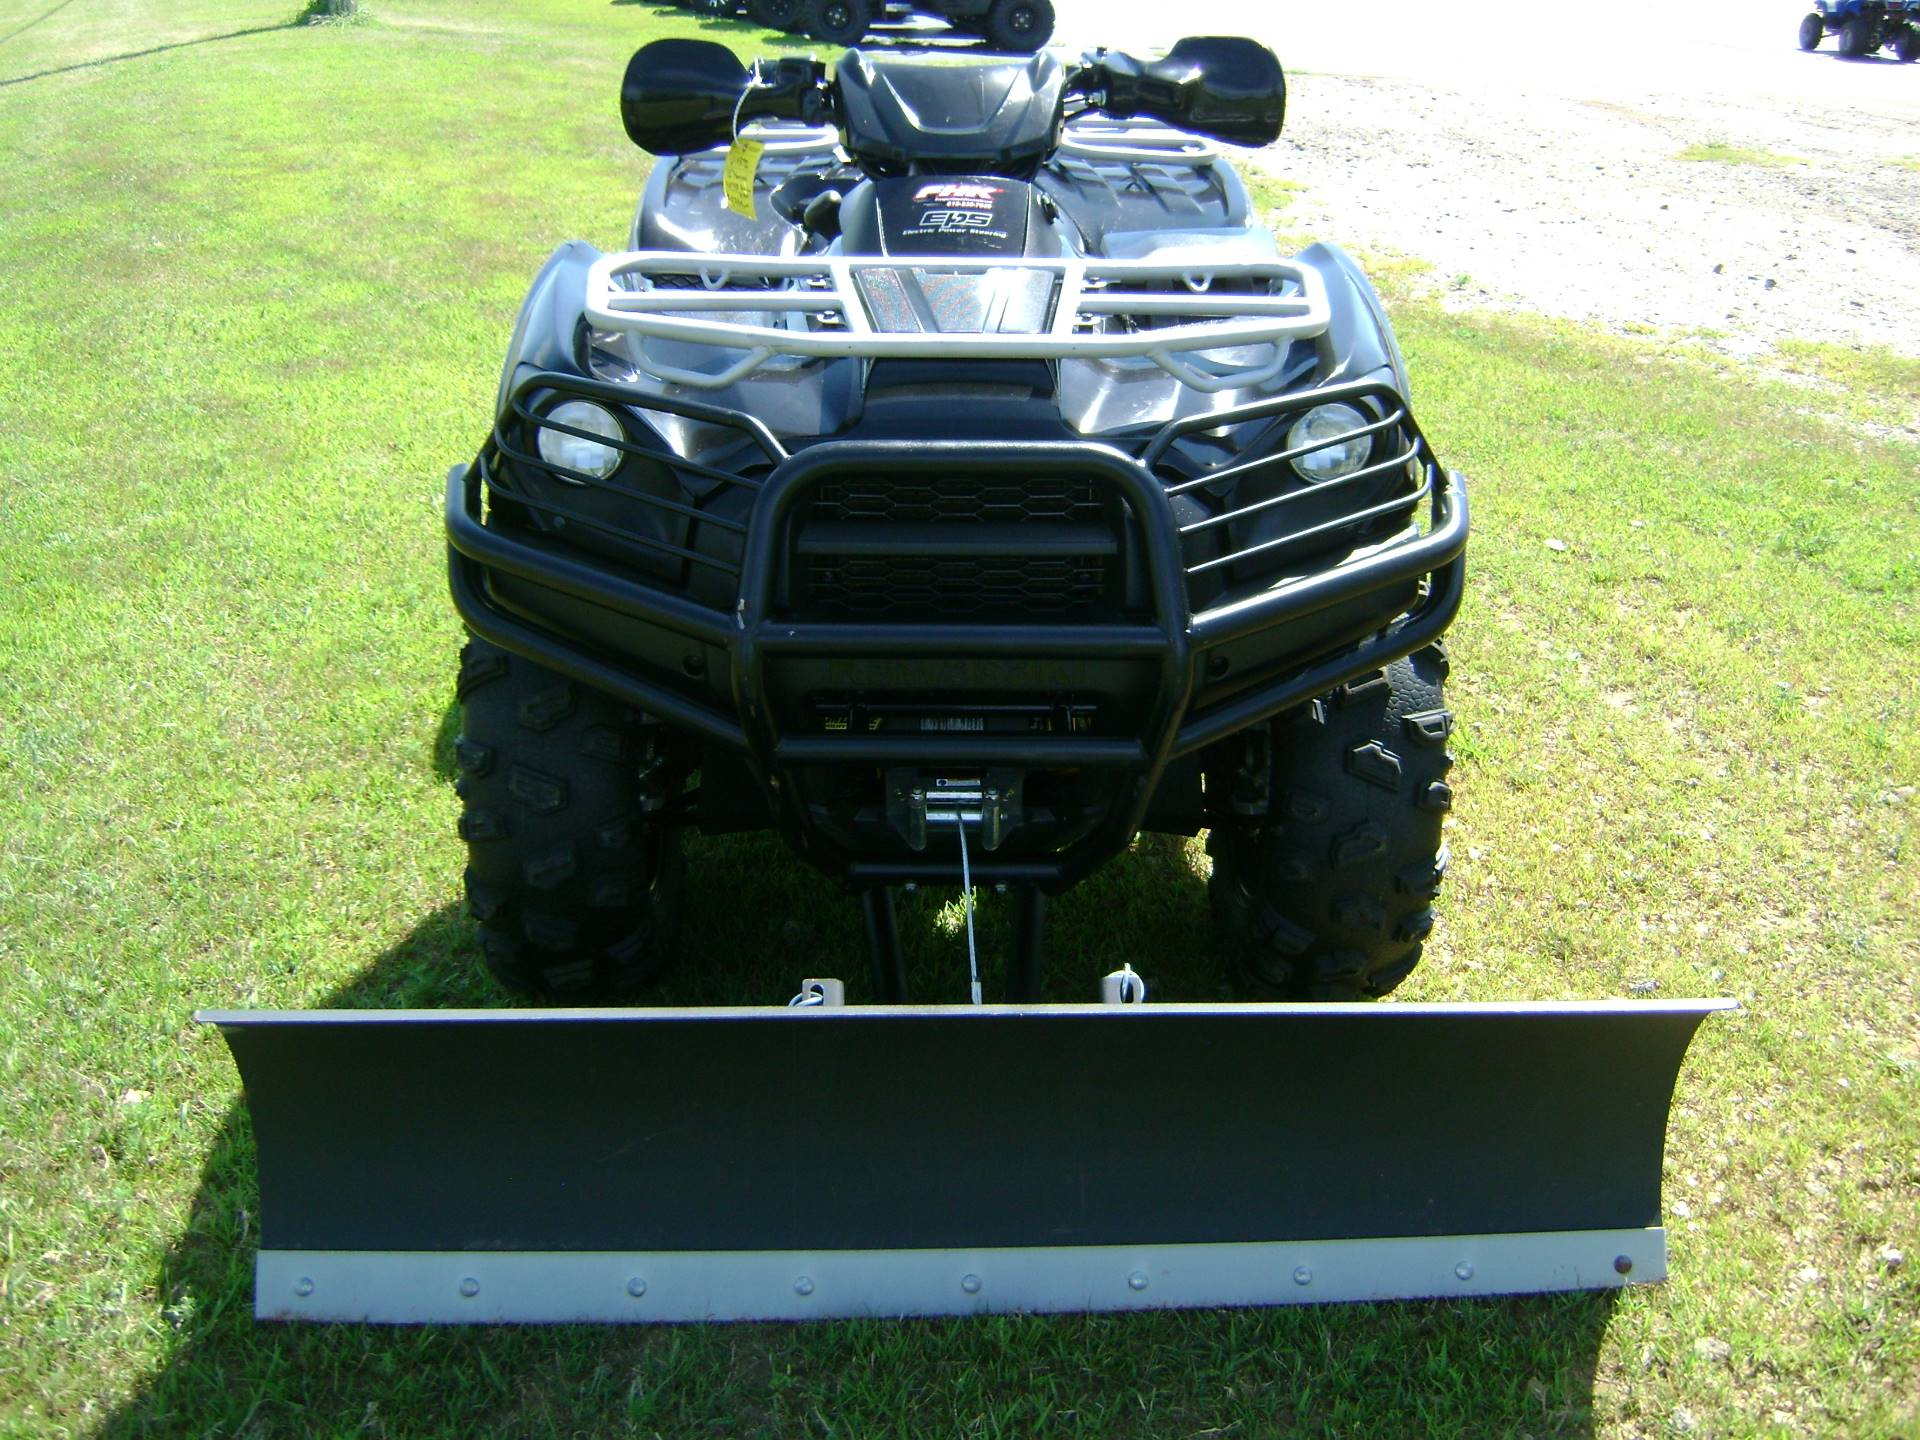 2012 Kawasaki BRUTE FORCE 750 in Freeport, Illinois - Photo 3